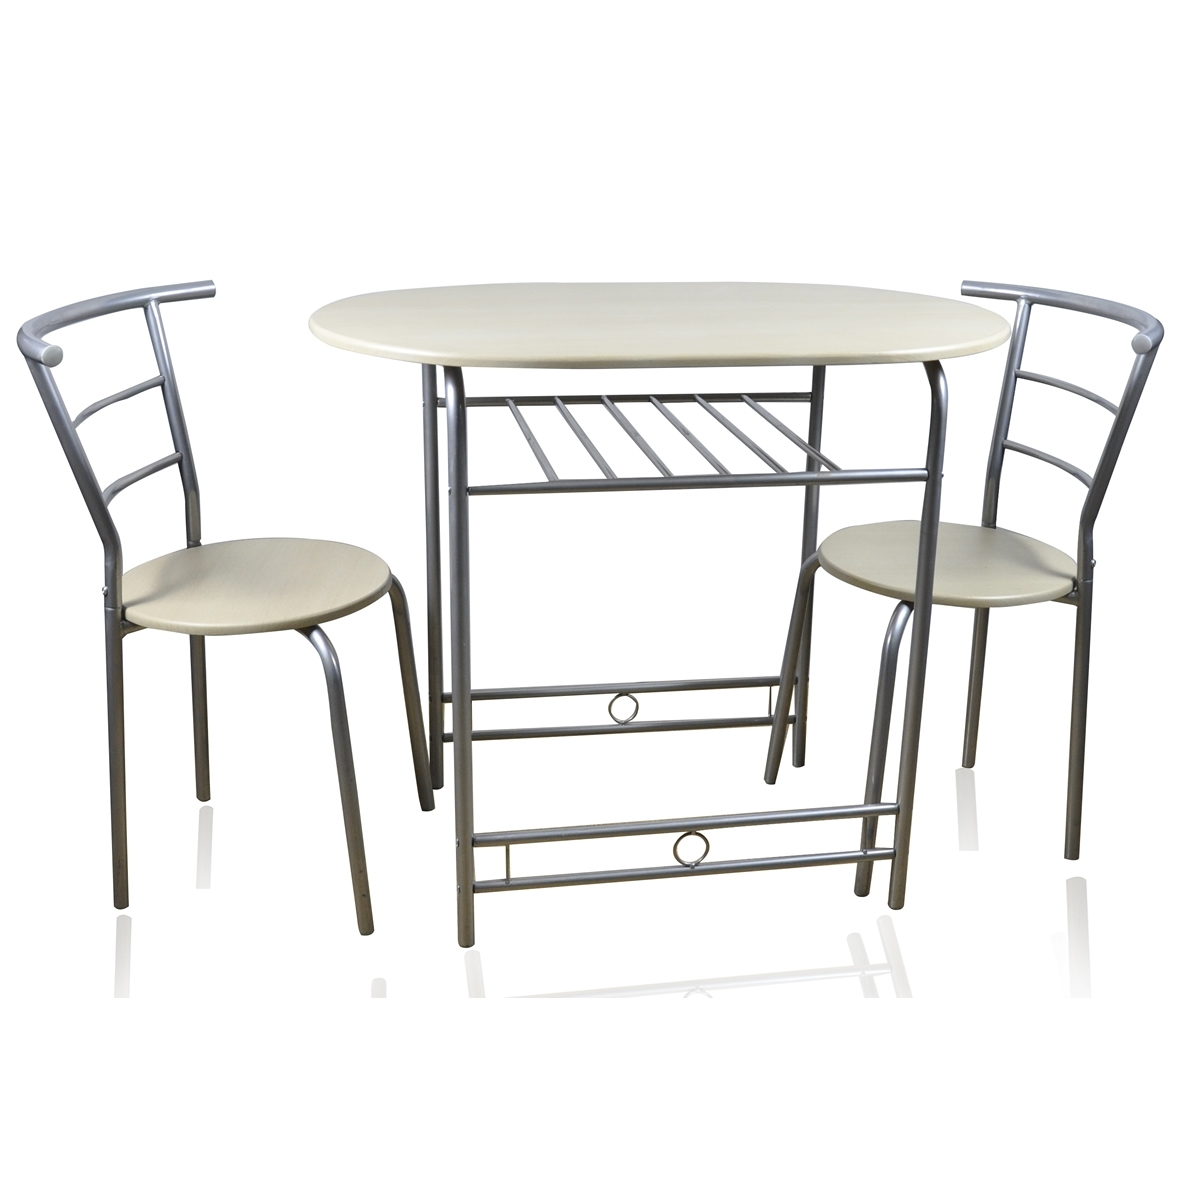 Most Current 2 Seater Dining Table And Chairs Gallery Dining Modern Leather Intended For Dining Tables With 2 Seater (View 8 of 25)